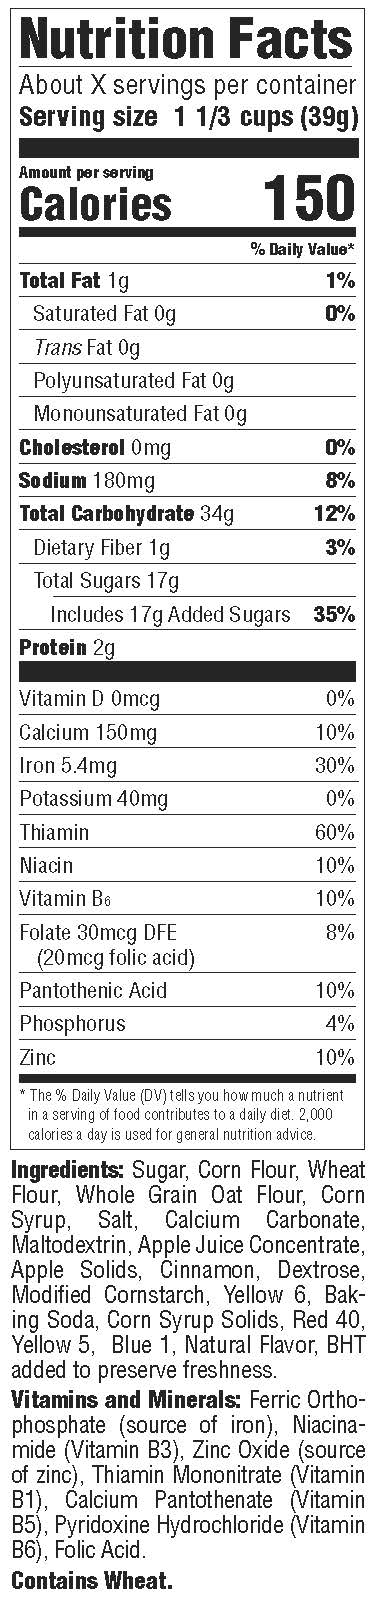 Malt O Meal Nutrition Facts Panel